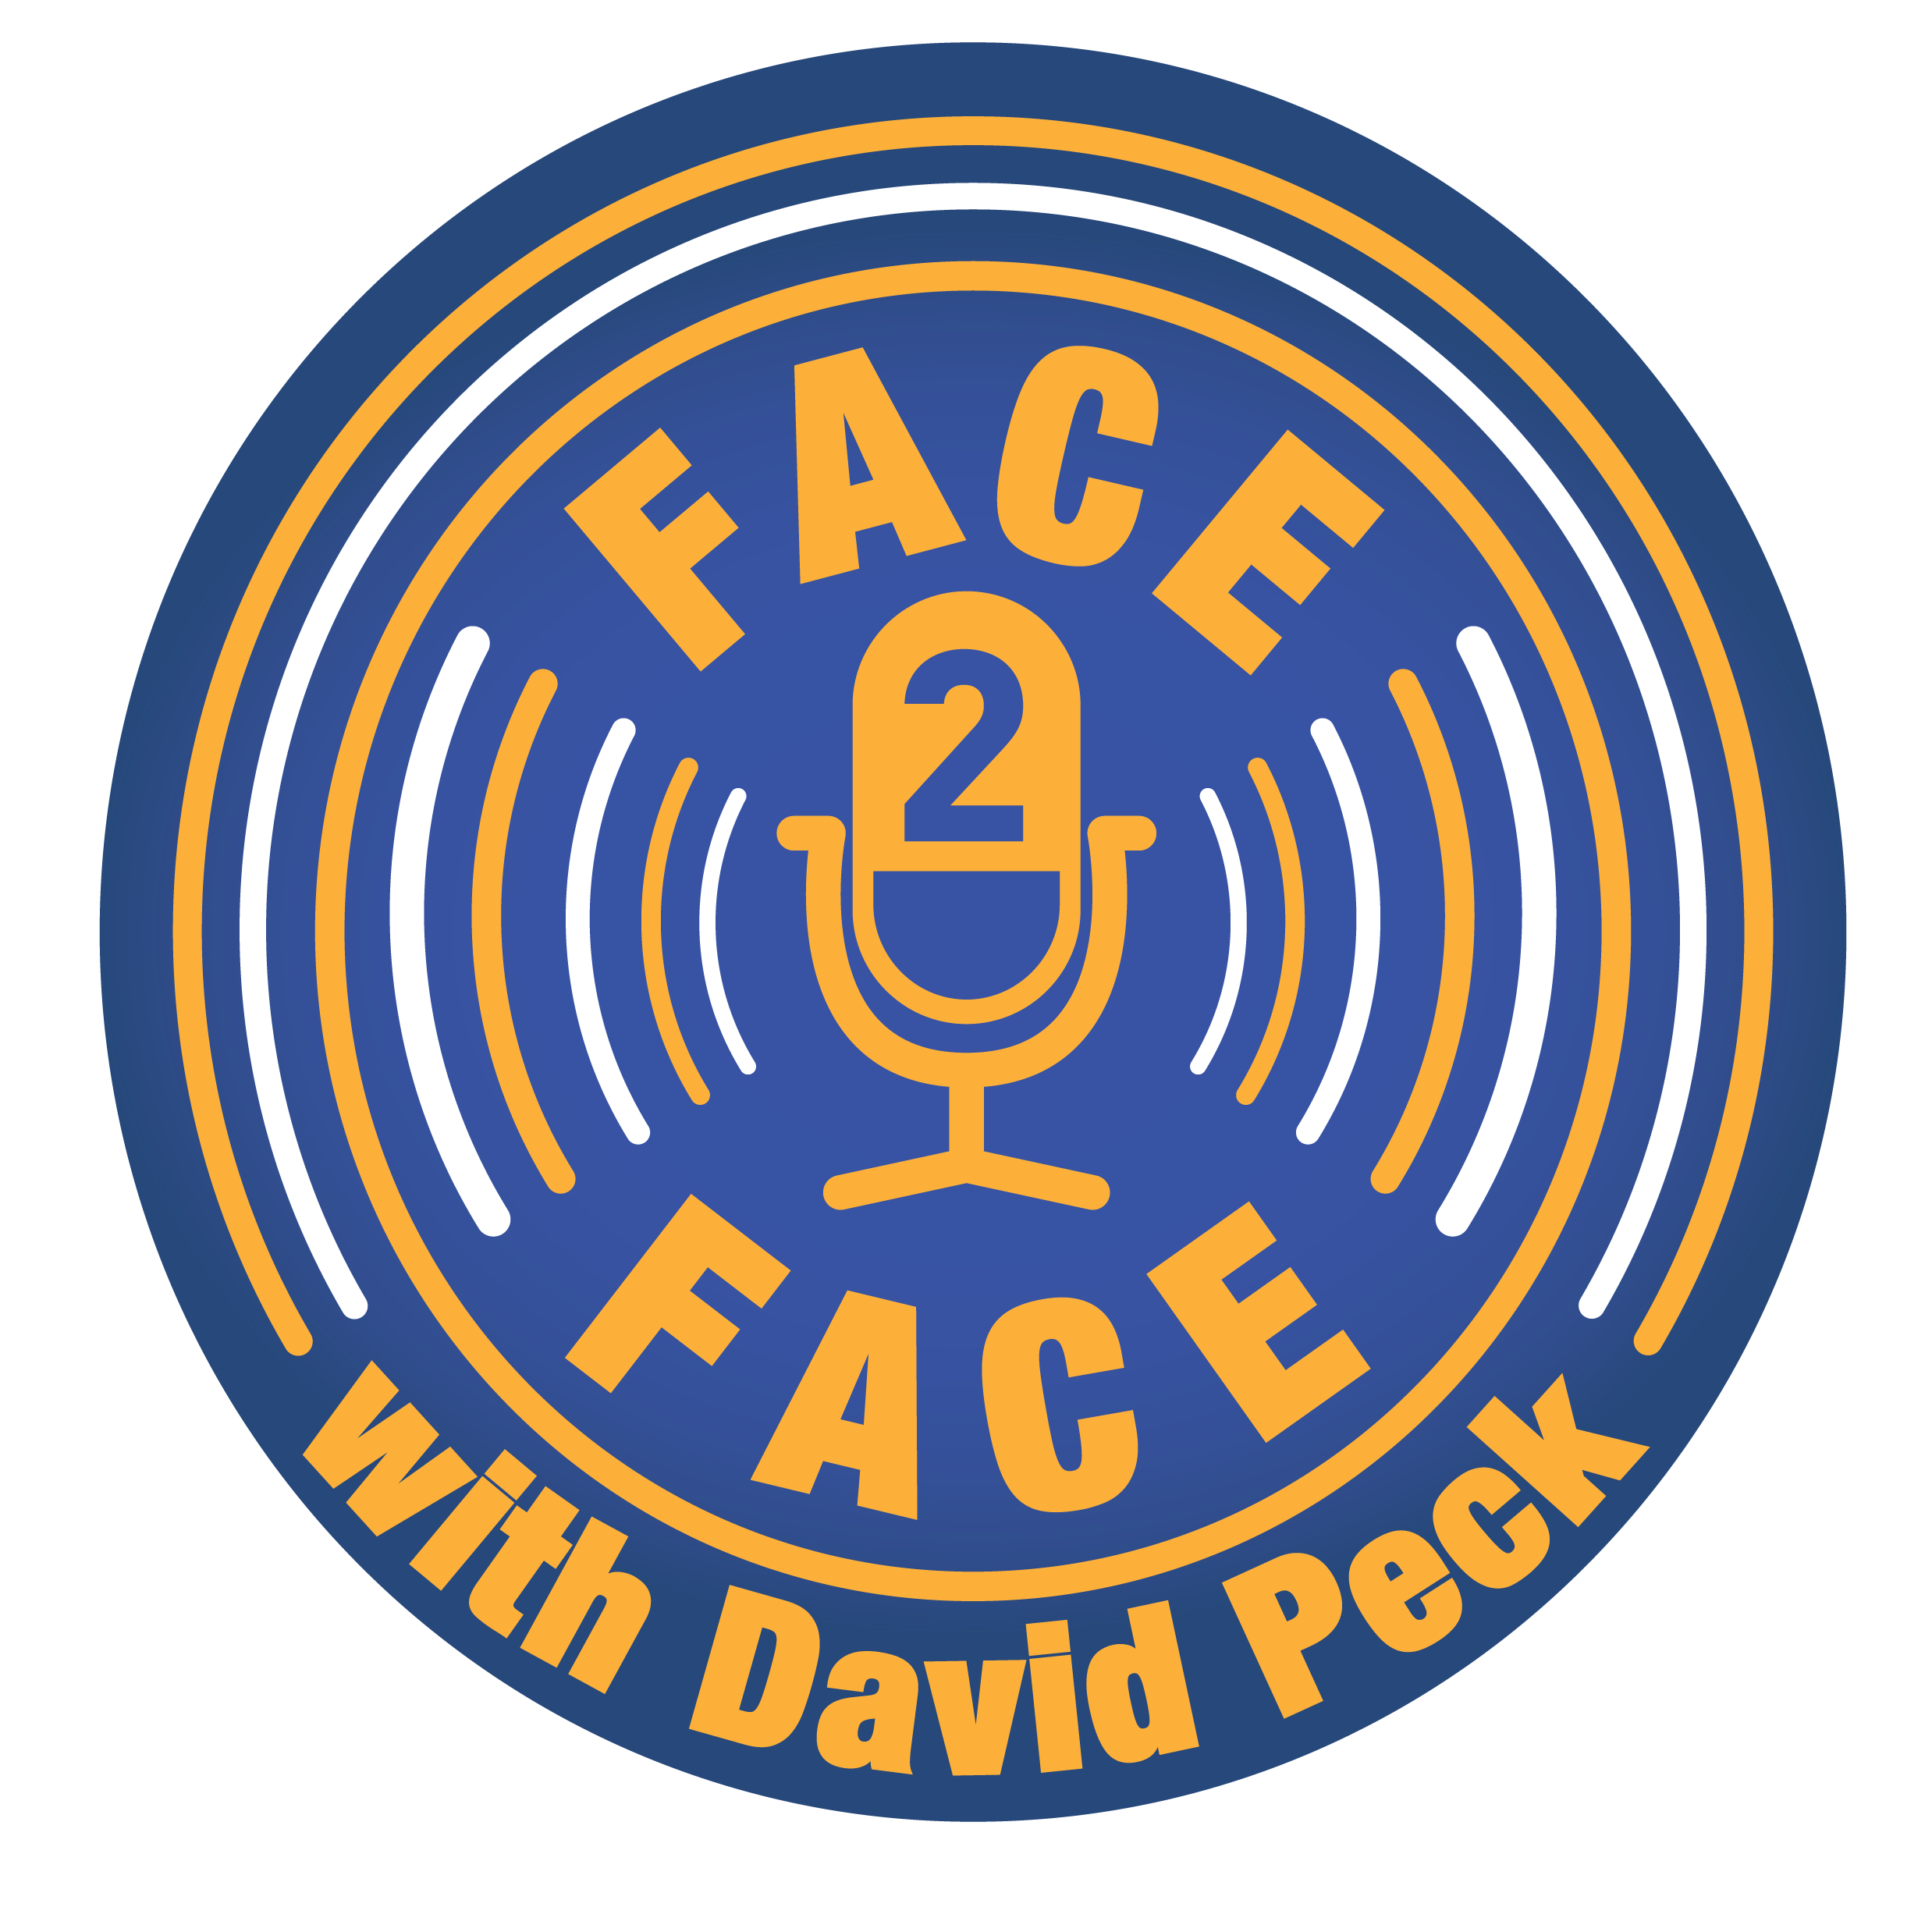 Face2Face, the podcast covering magic, philosophy, keynote speaking, human rights and everything in between, hosted by David Peck